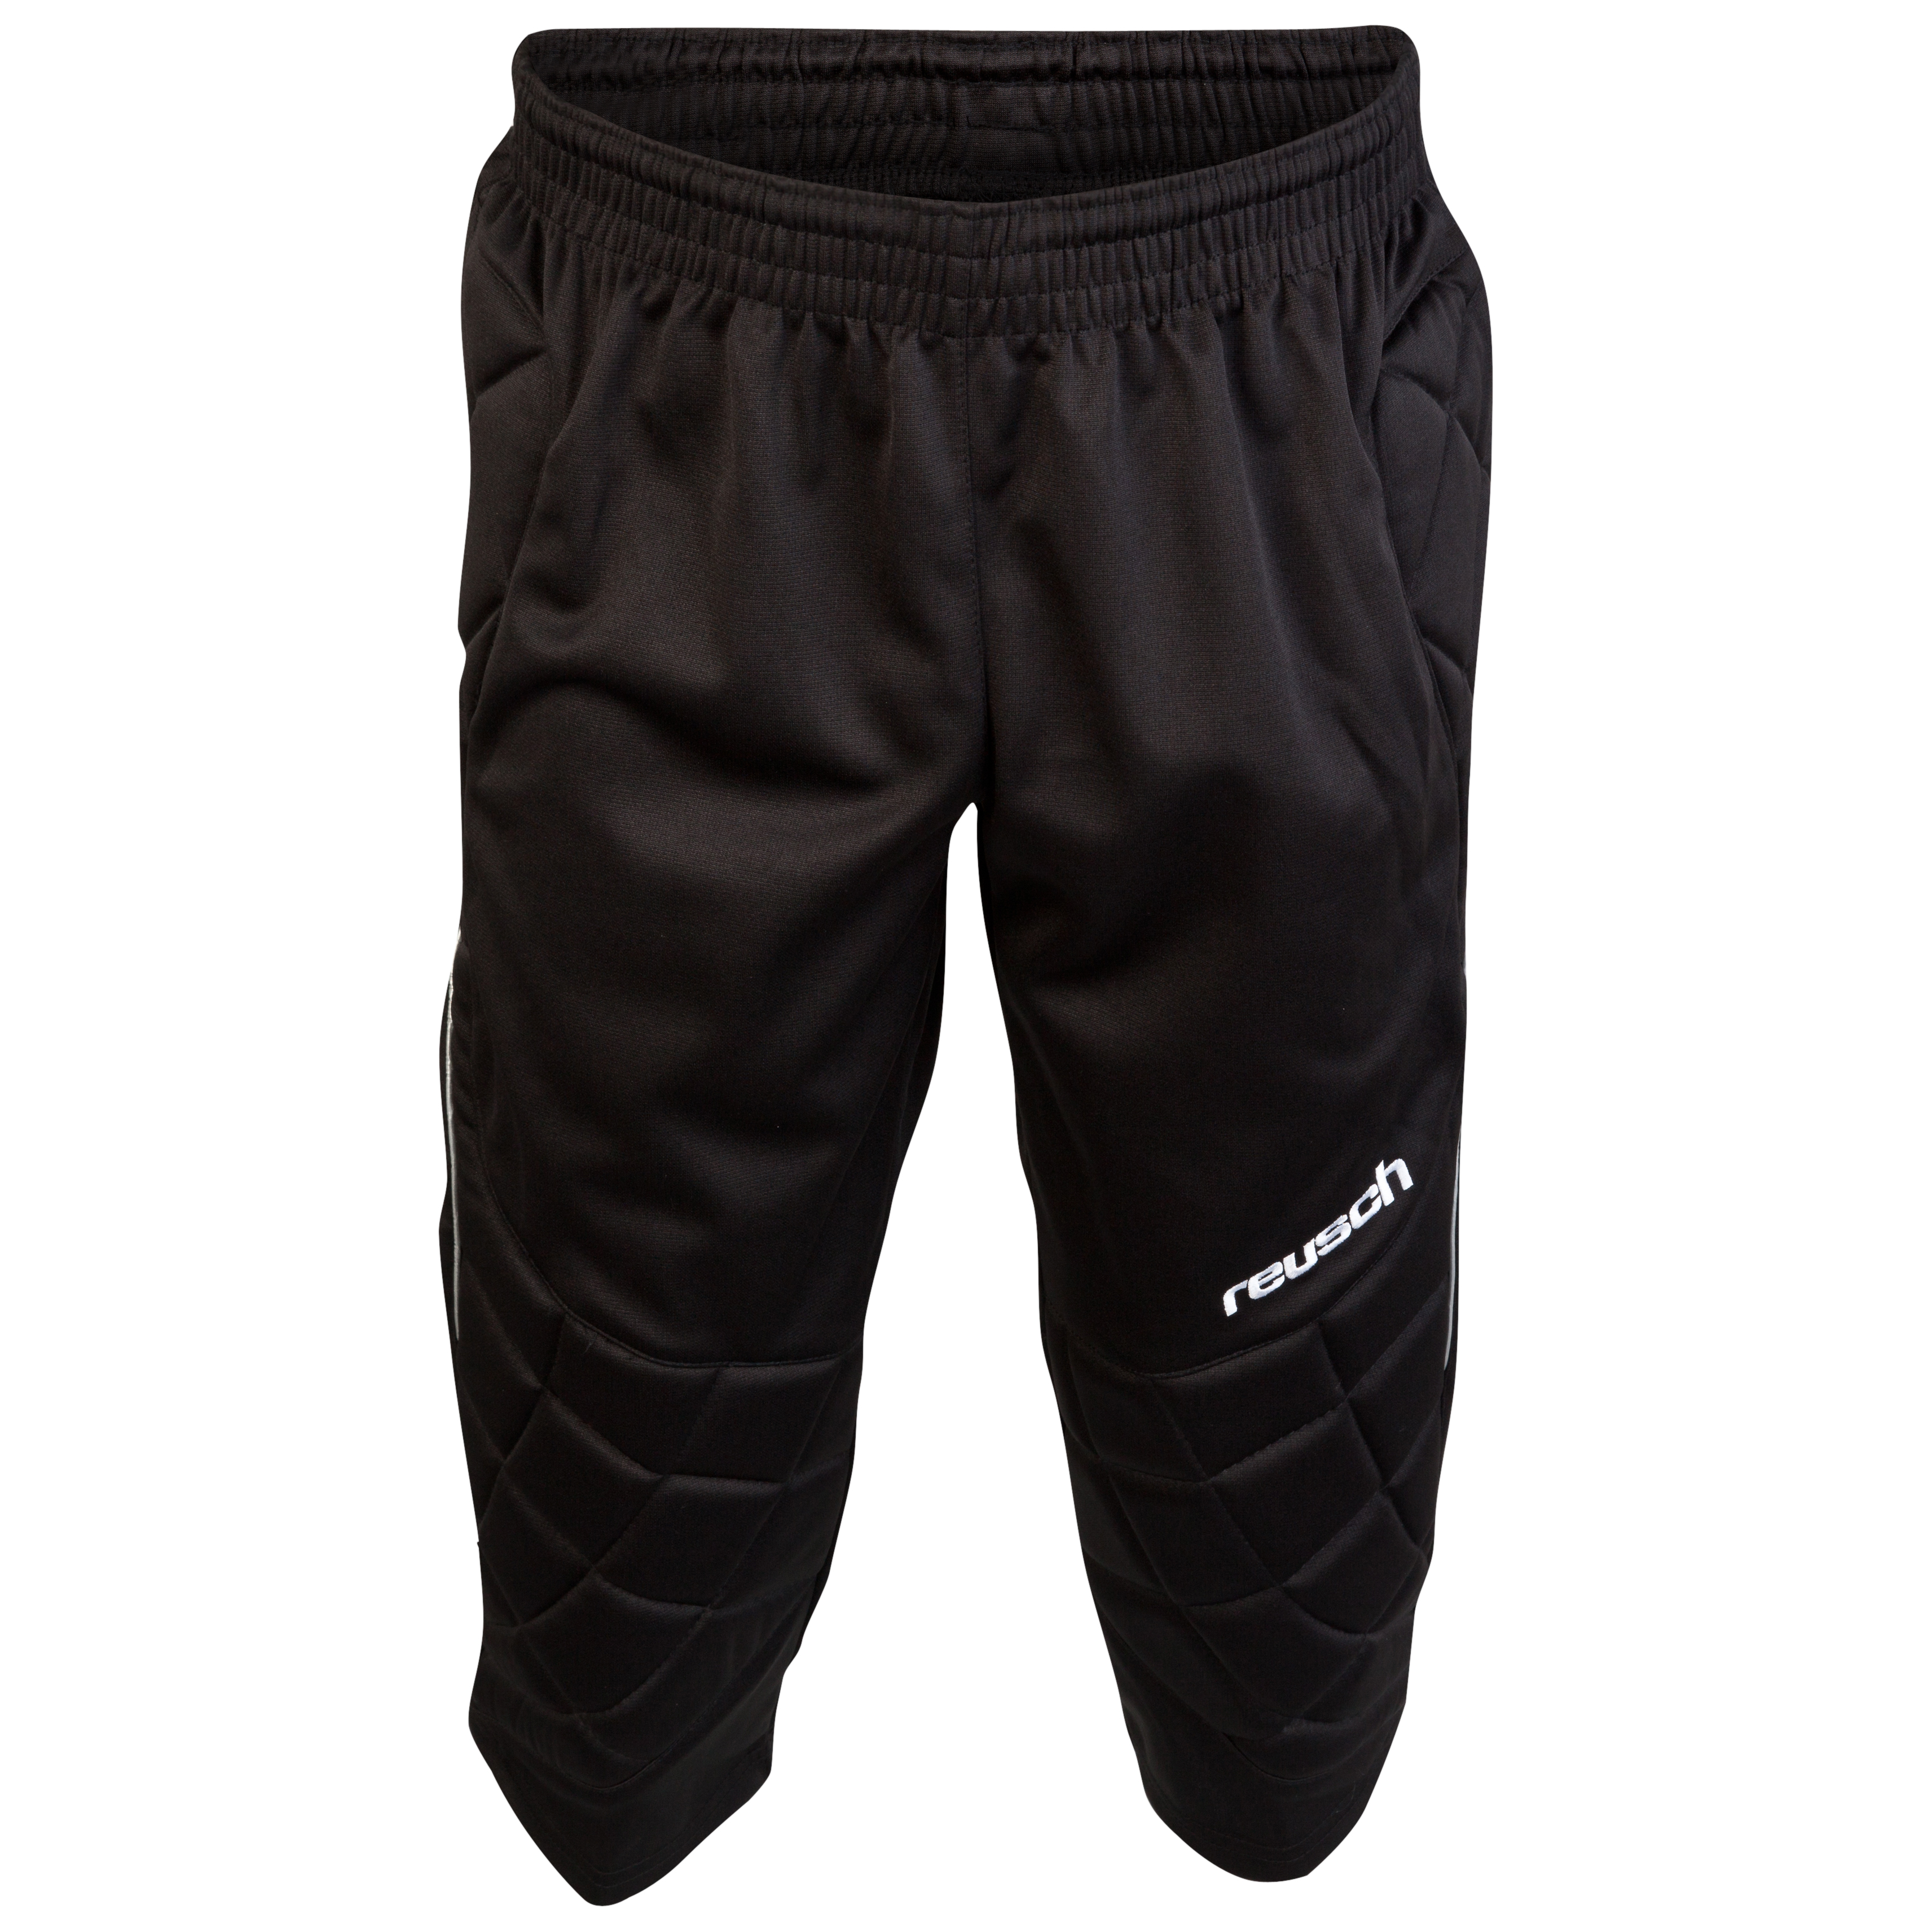 Reusch 360 Protection 3/4 Goalkeeping Pants - Kids-Black